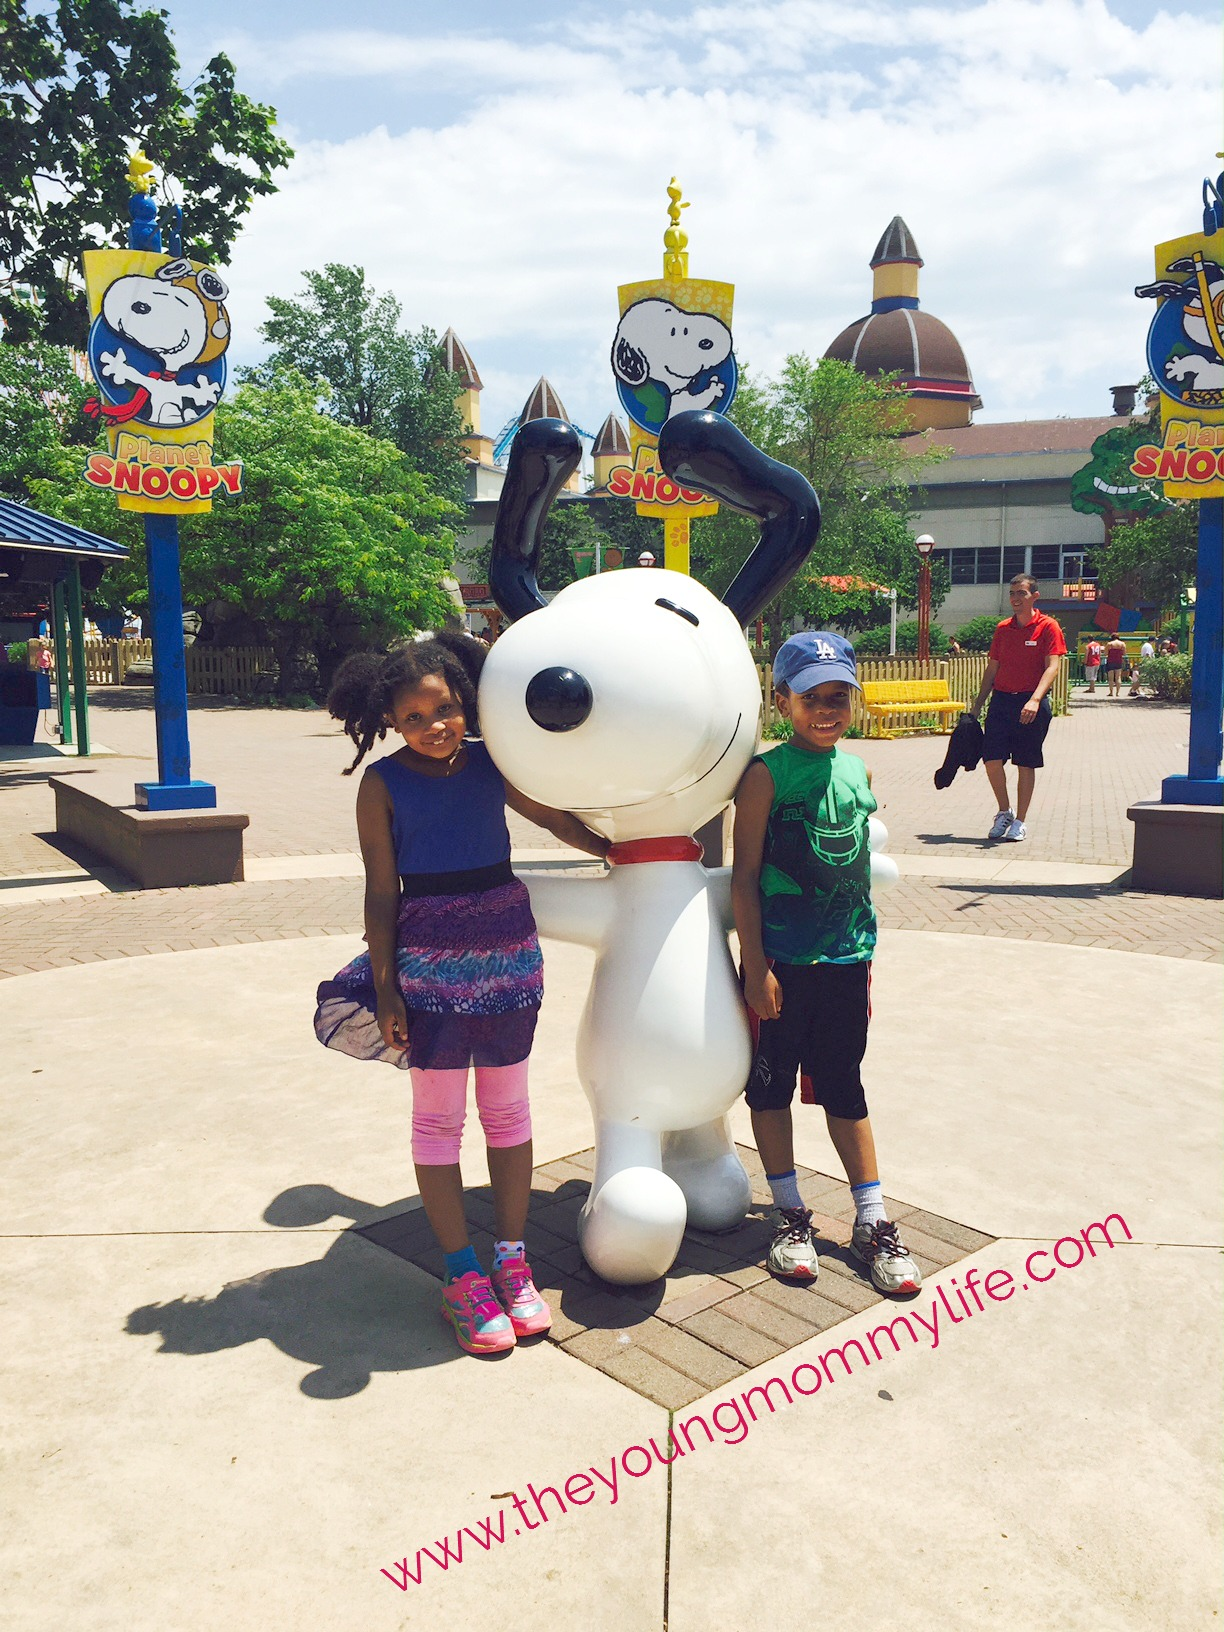 The Jefferson kids at Planet Snoopy, one of three designated kids areas at Cedar Point